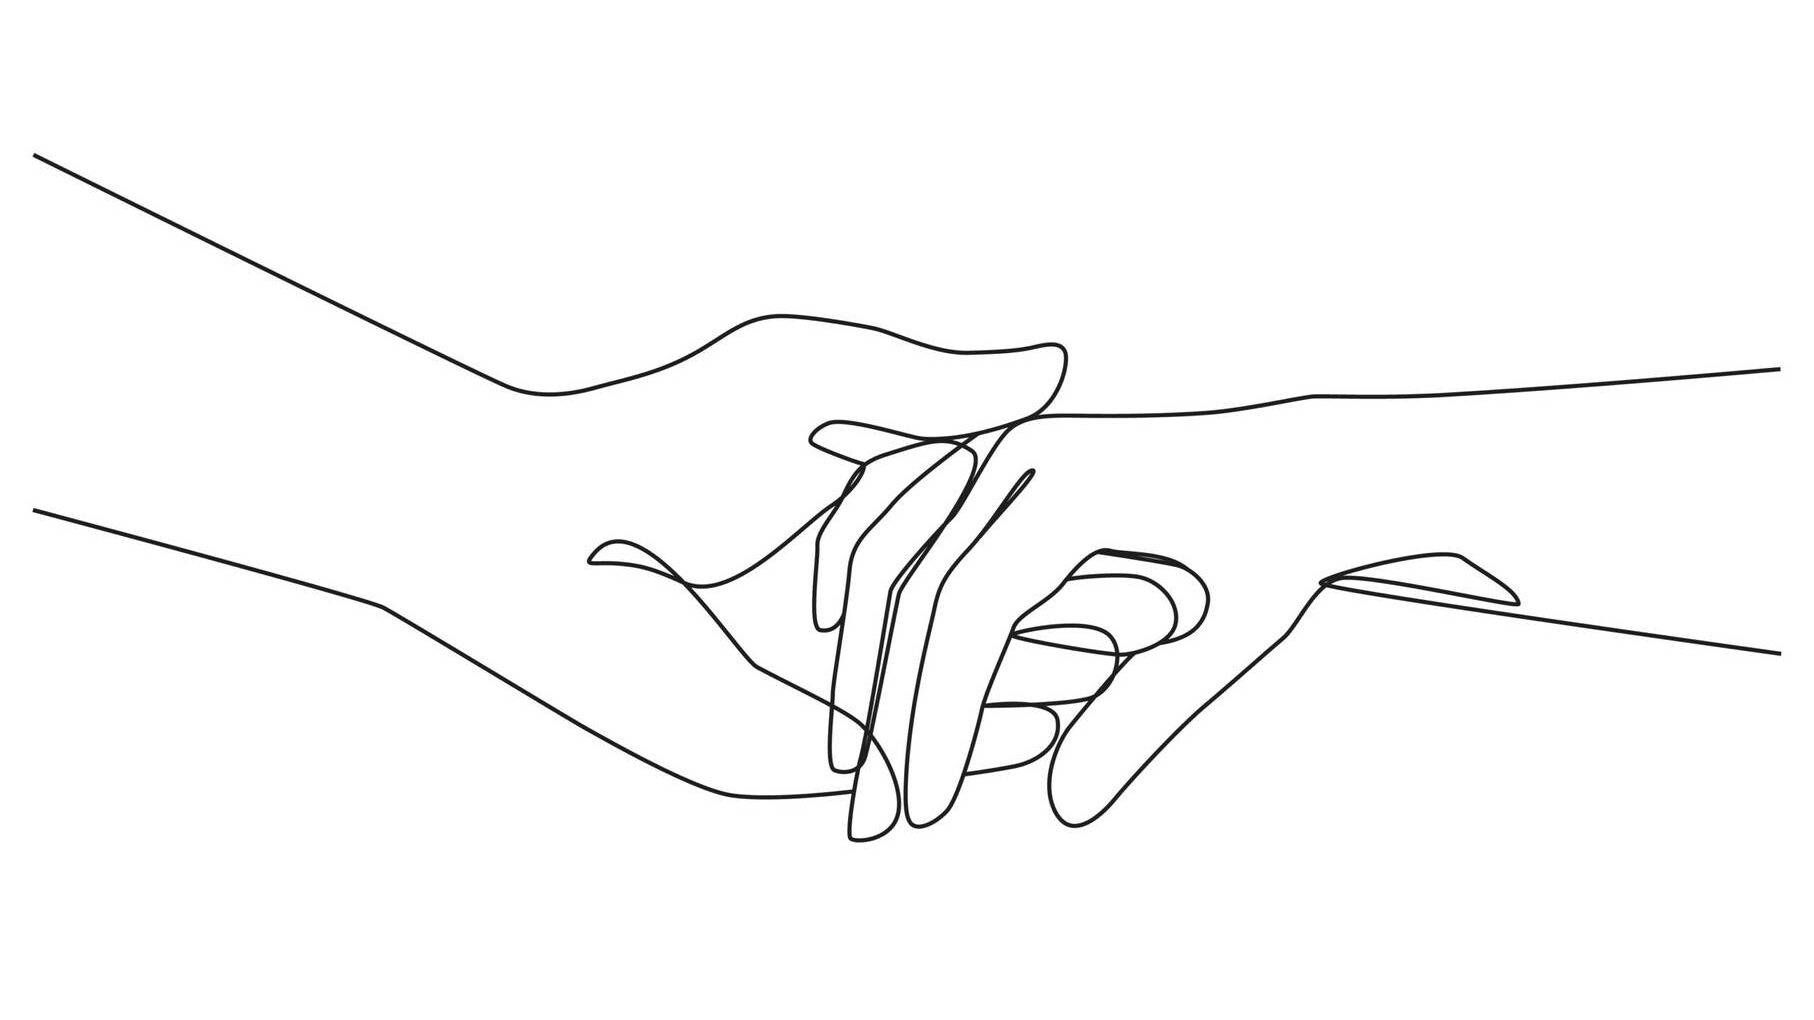 Line illustration of hands holding. Rewire PBS Health Suicide Ideation